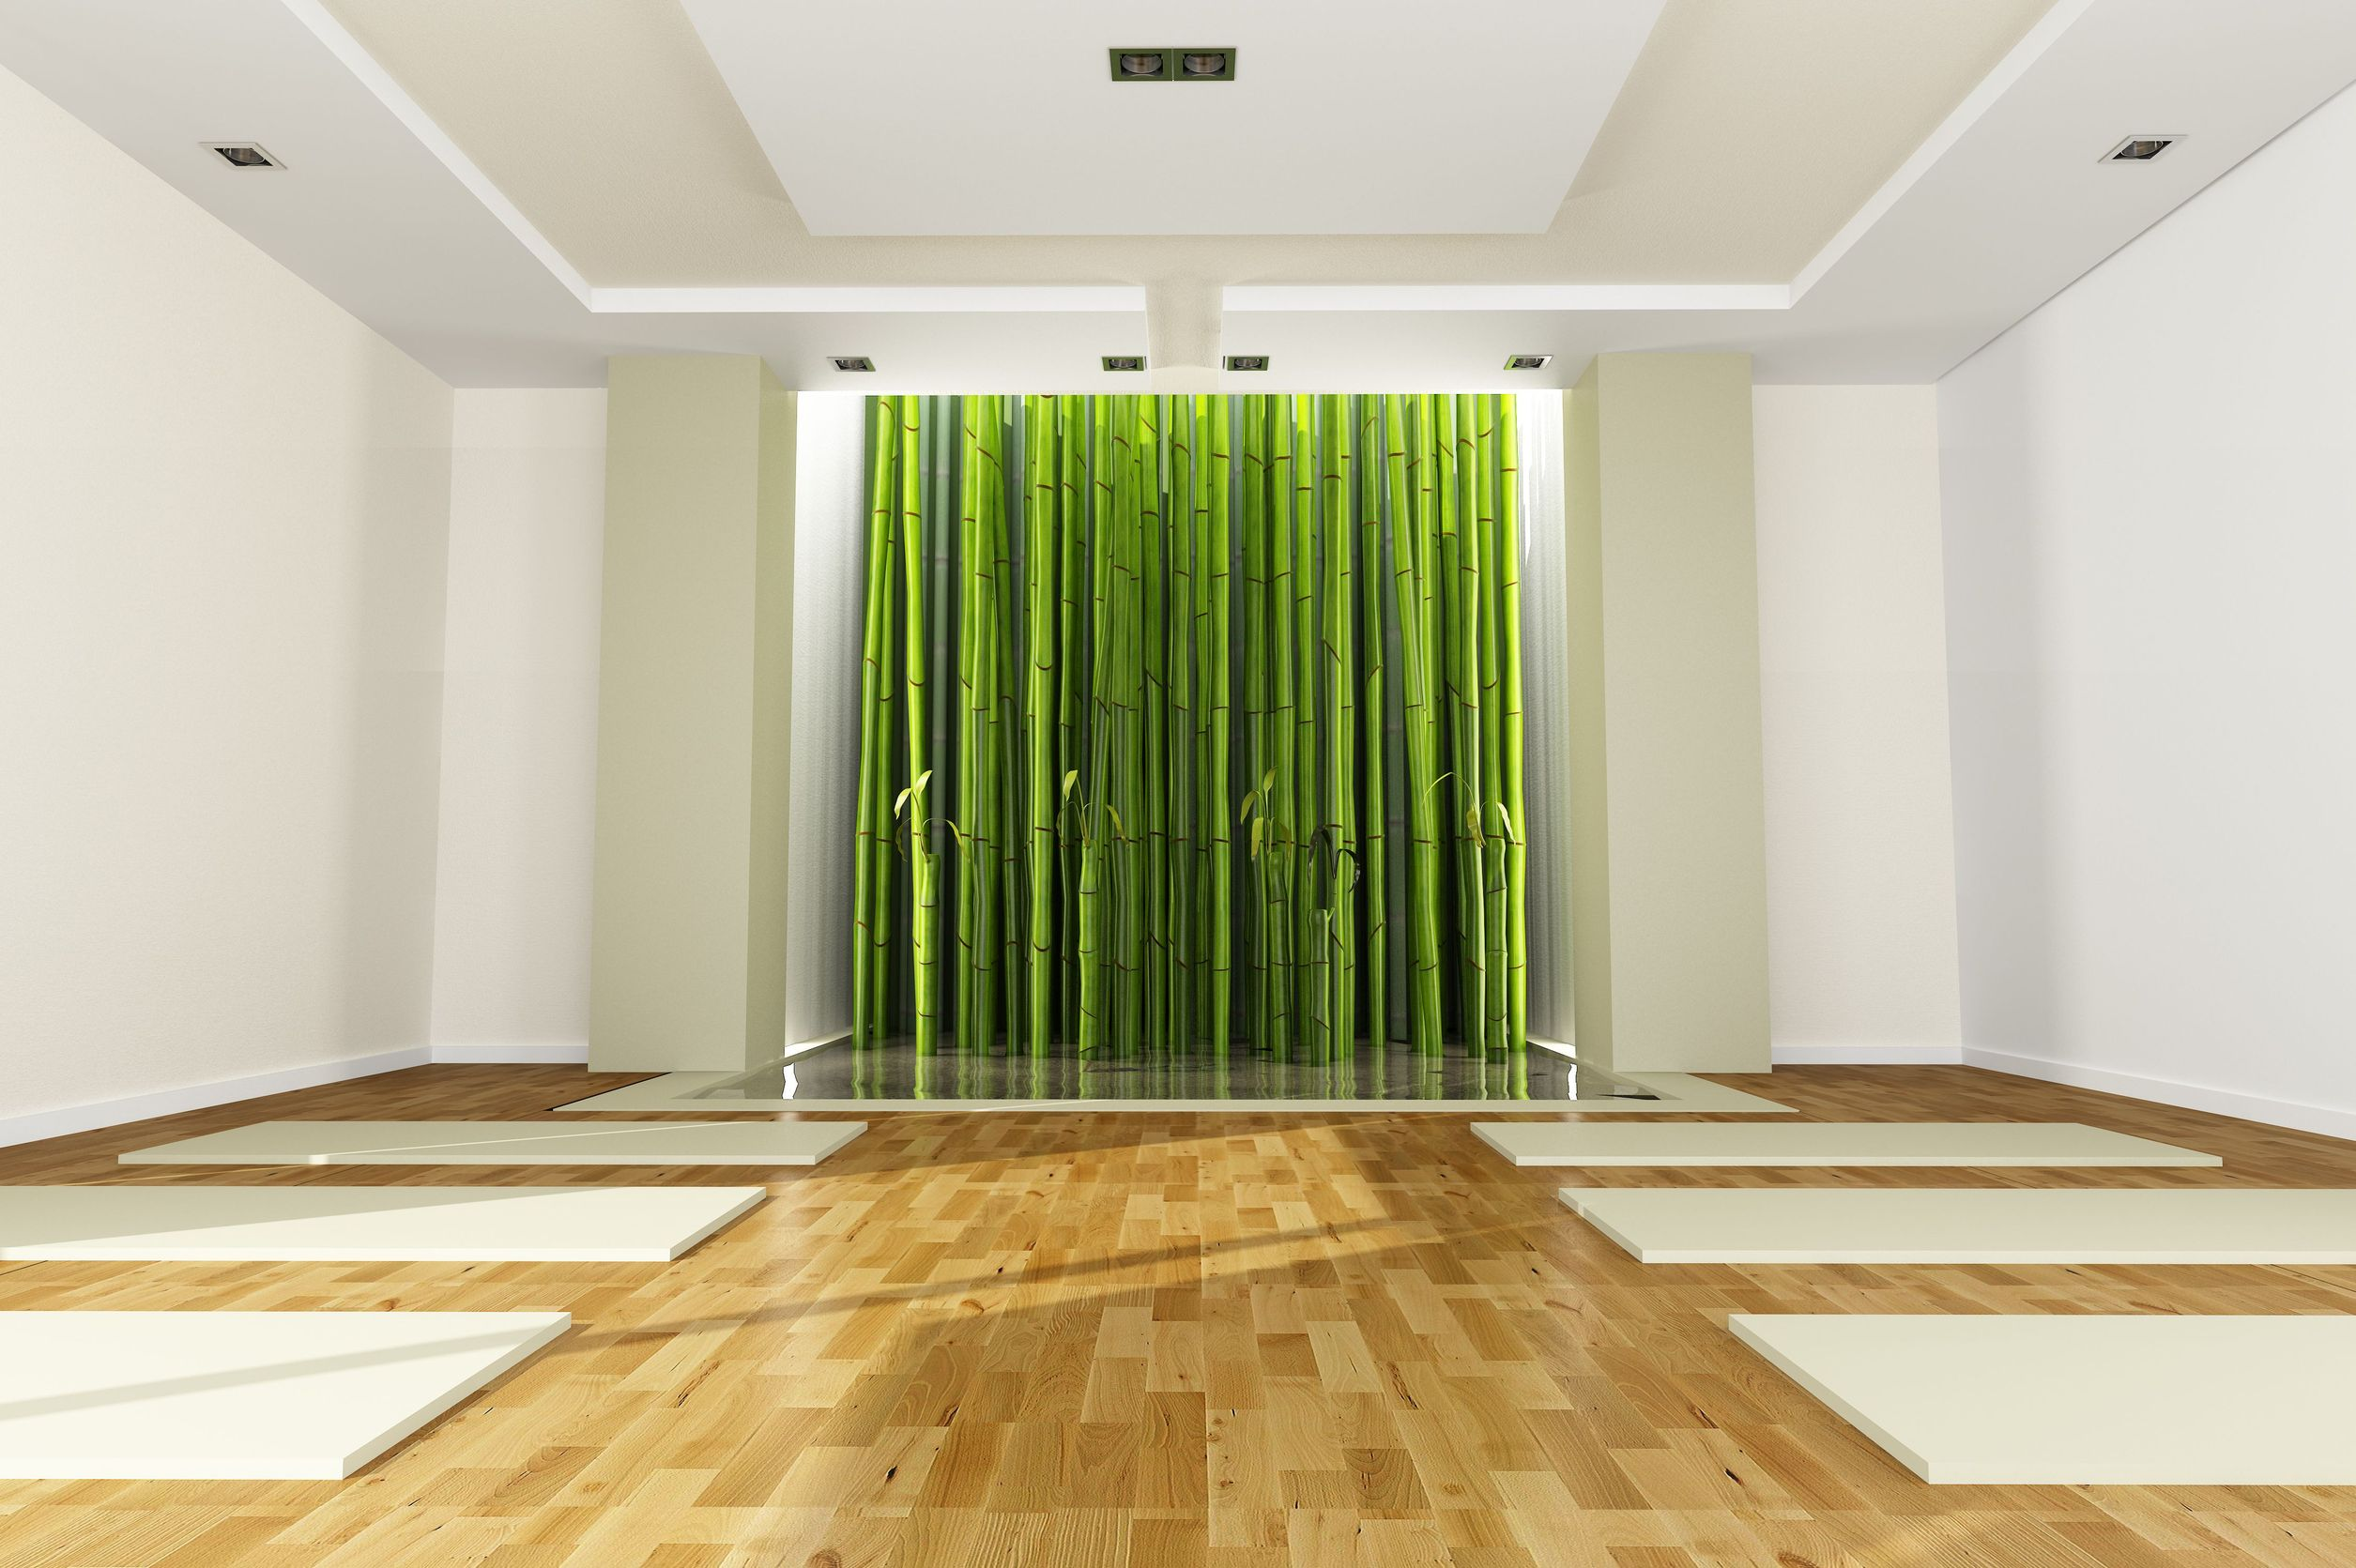 Uncategorized Banboo Flooring the truth about bamboo flooring woodfloordoctor com flooring